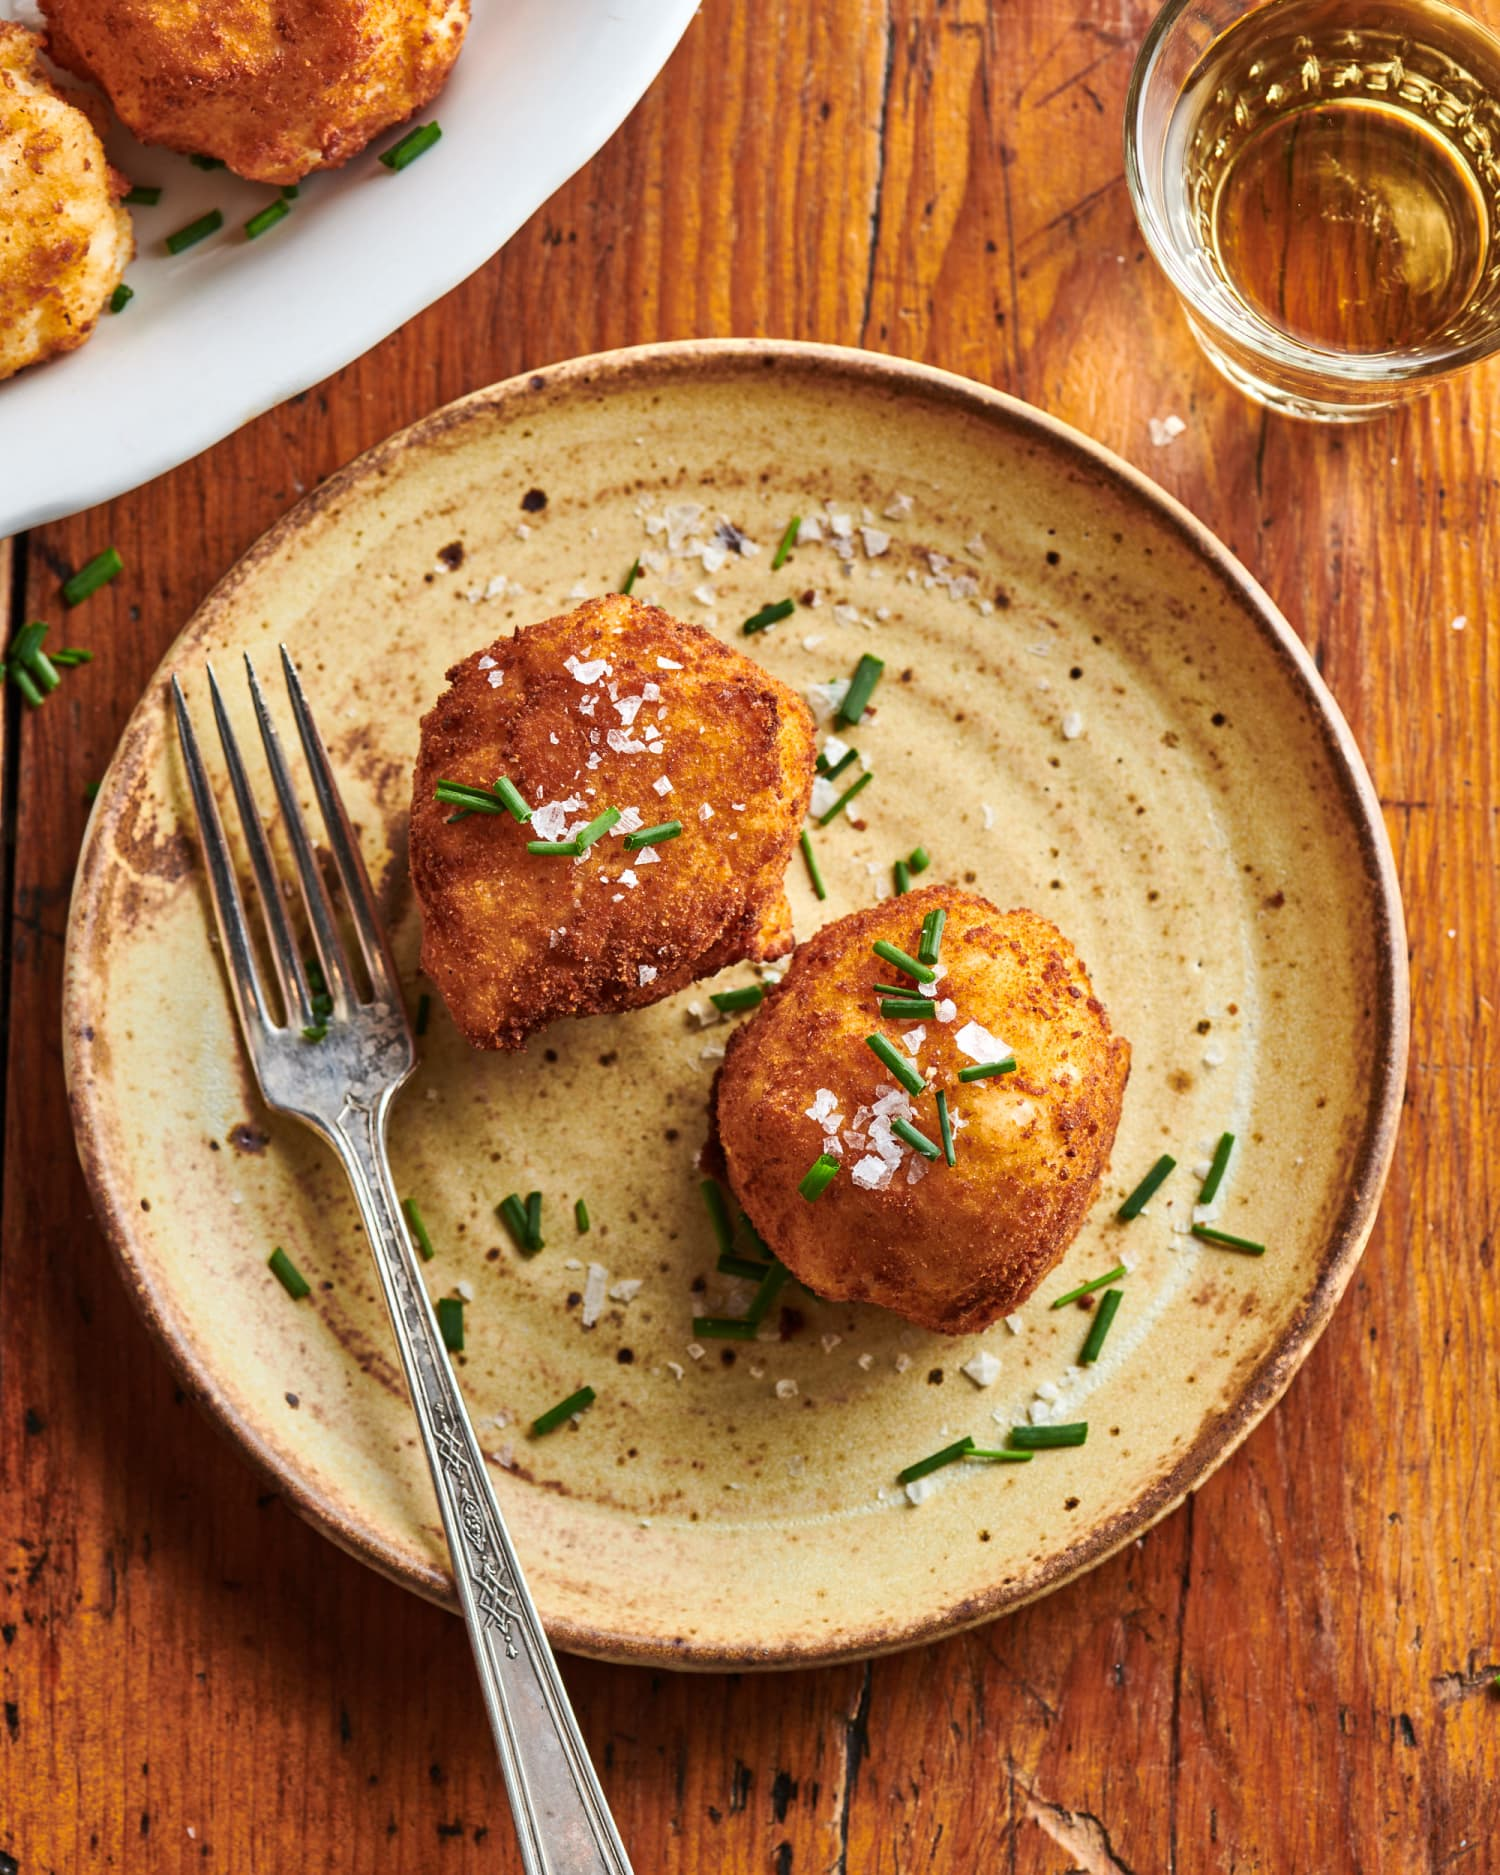 Transform Your Leftover Mashed Potatoes into Crispy, Cheese-Stuffed Croquettes